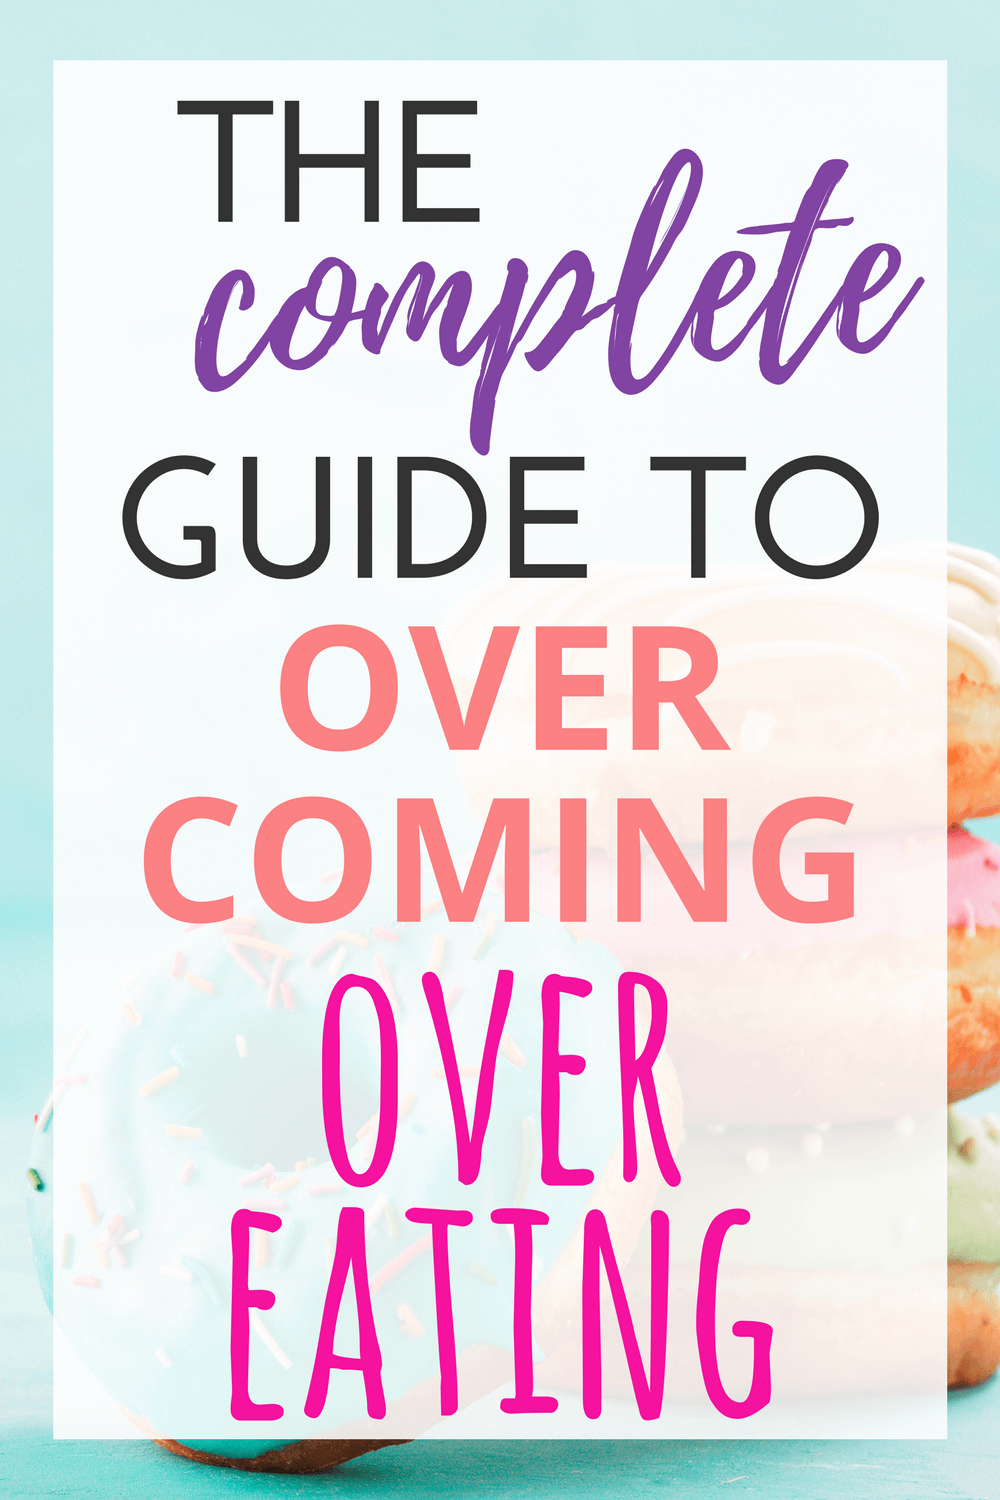 Is it possible to live in a place where you are finally able to stop overeating? This ultimate resource guide will help give you tips and ideas to stop overeating, binge eating, and emotional indulgence!